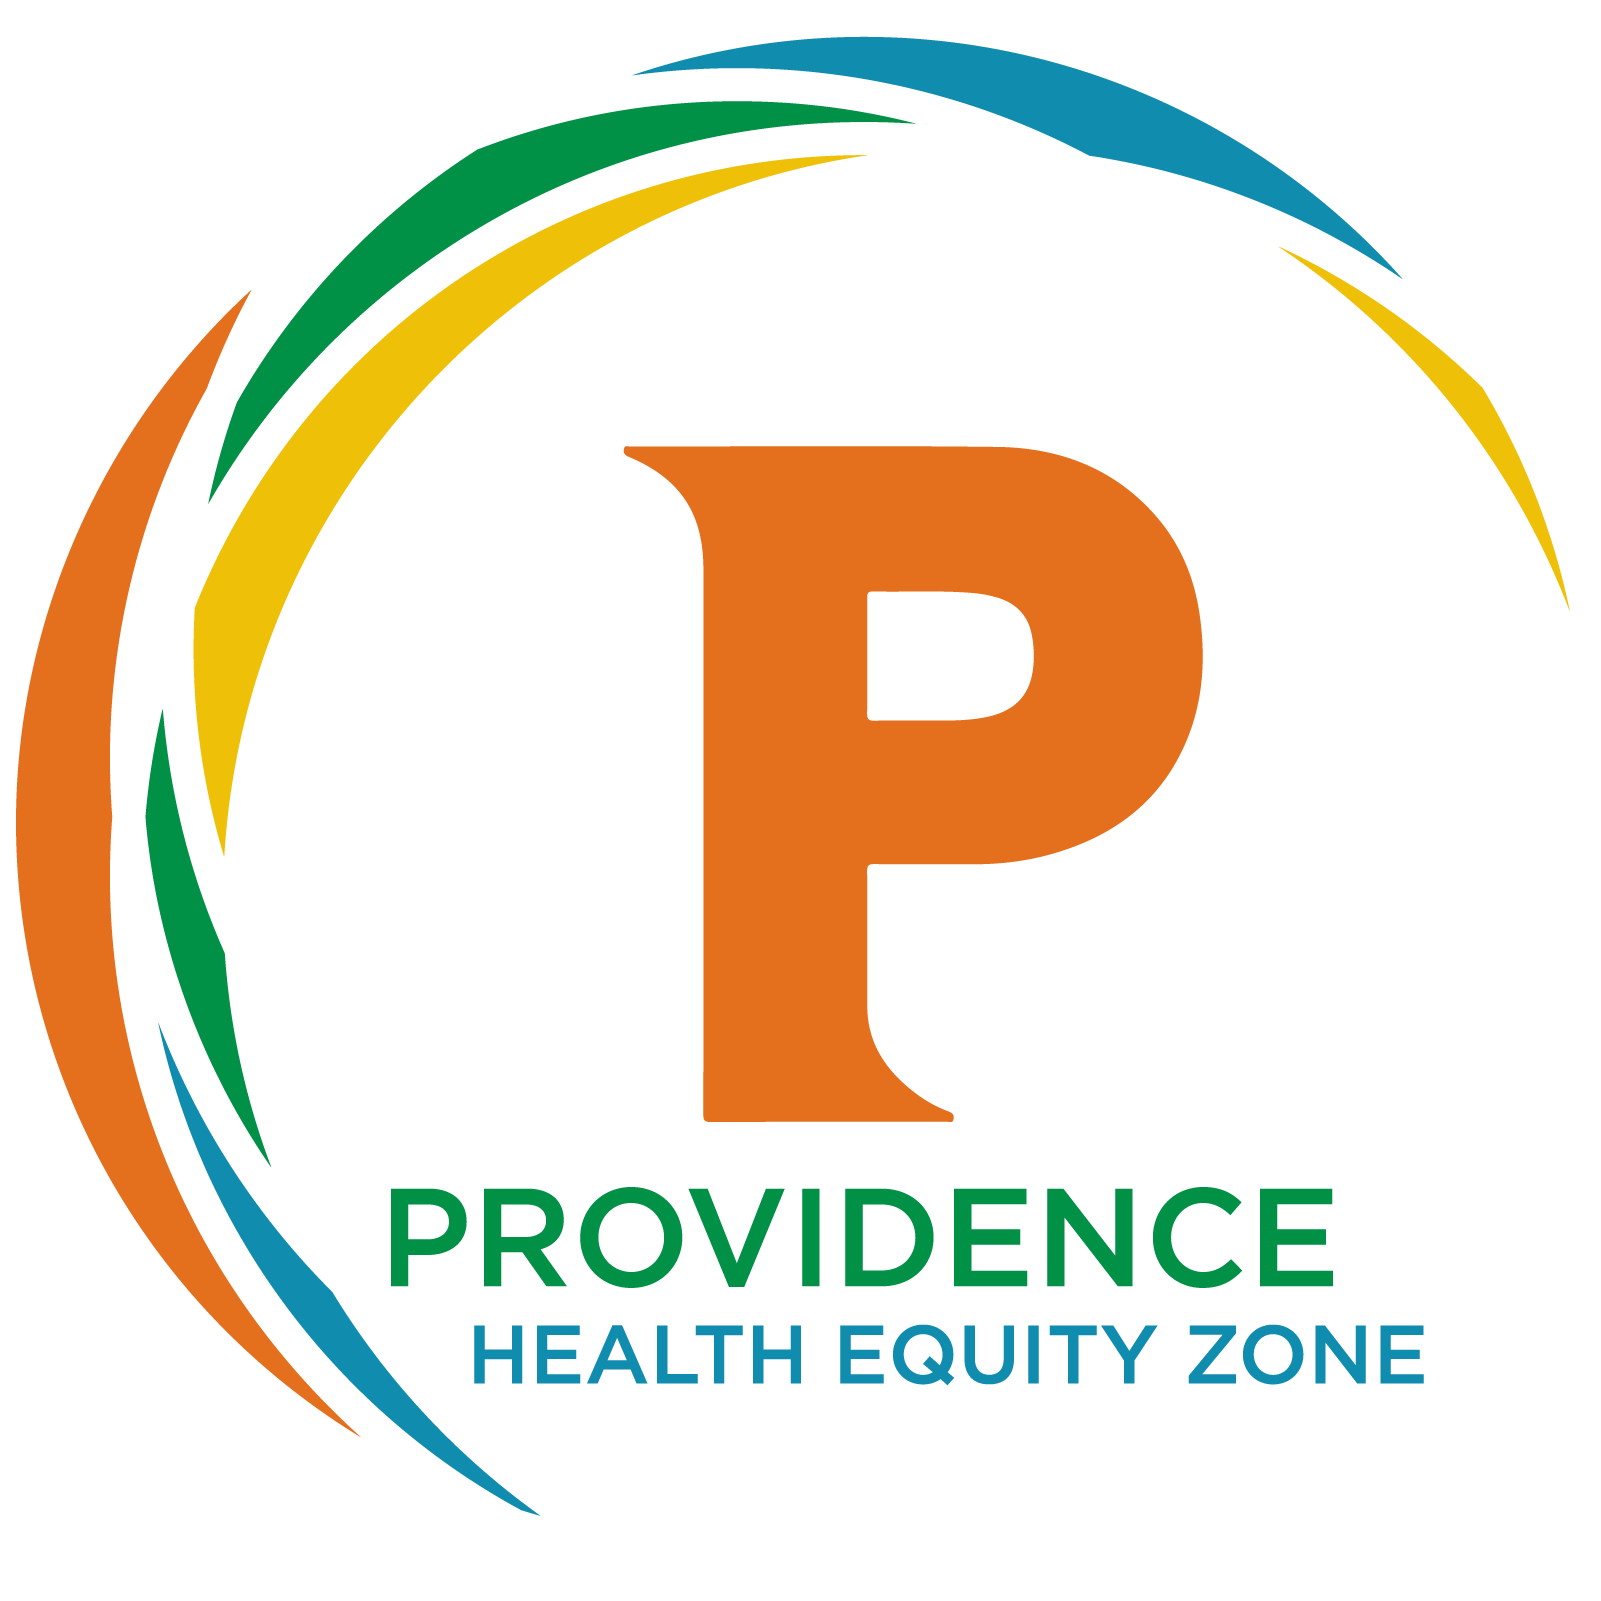 City Of Providence City Of Providence Health Equity Zone